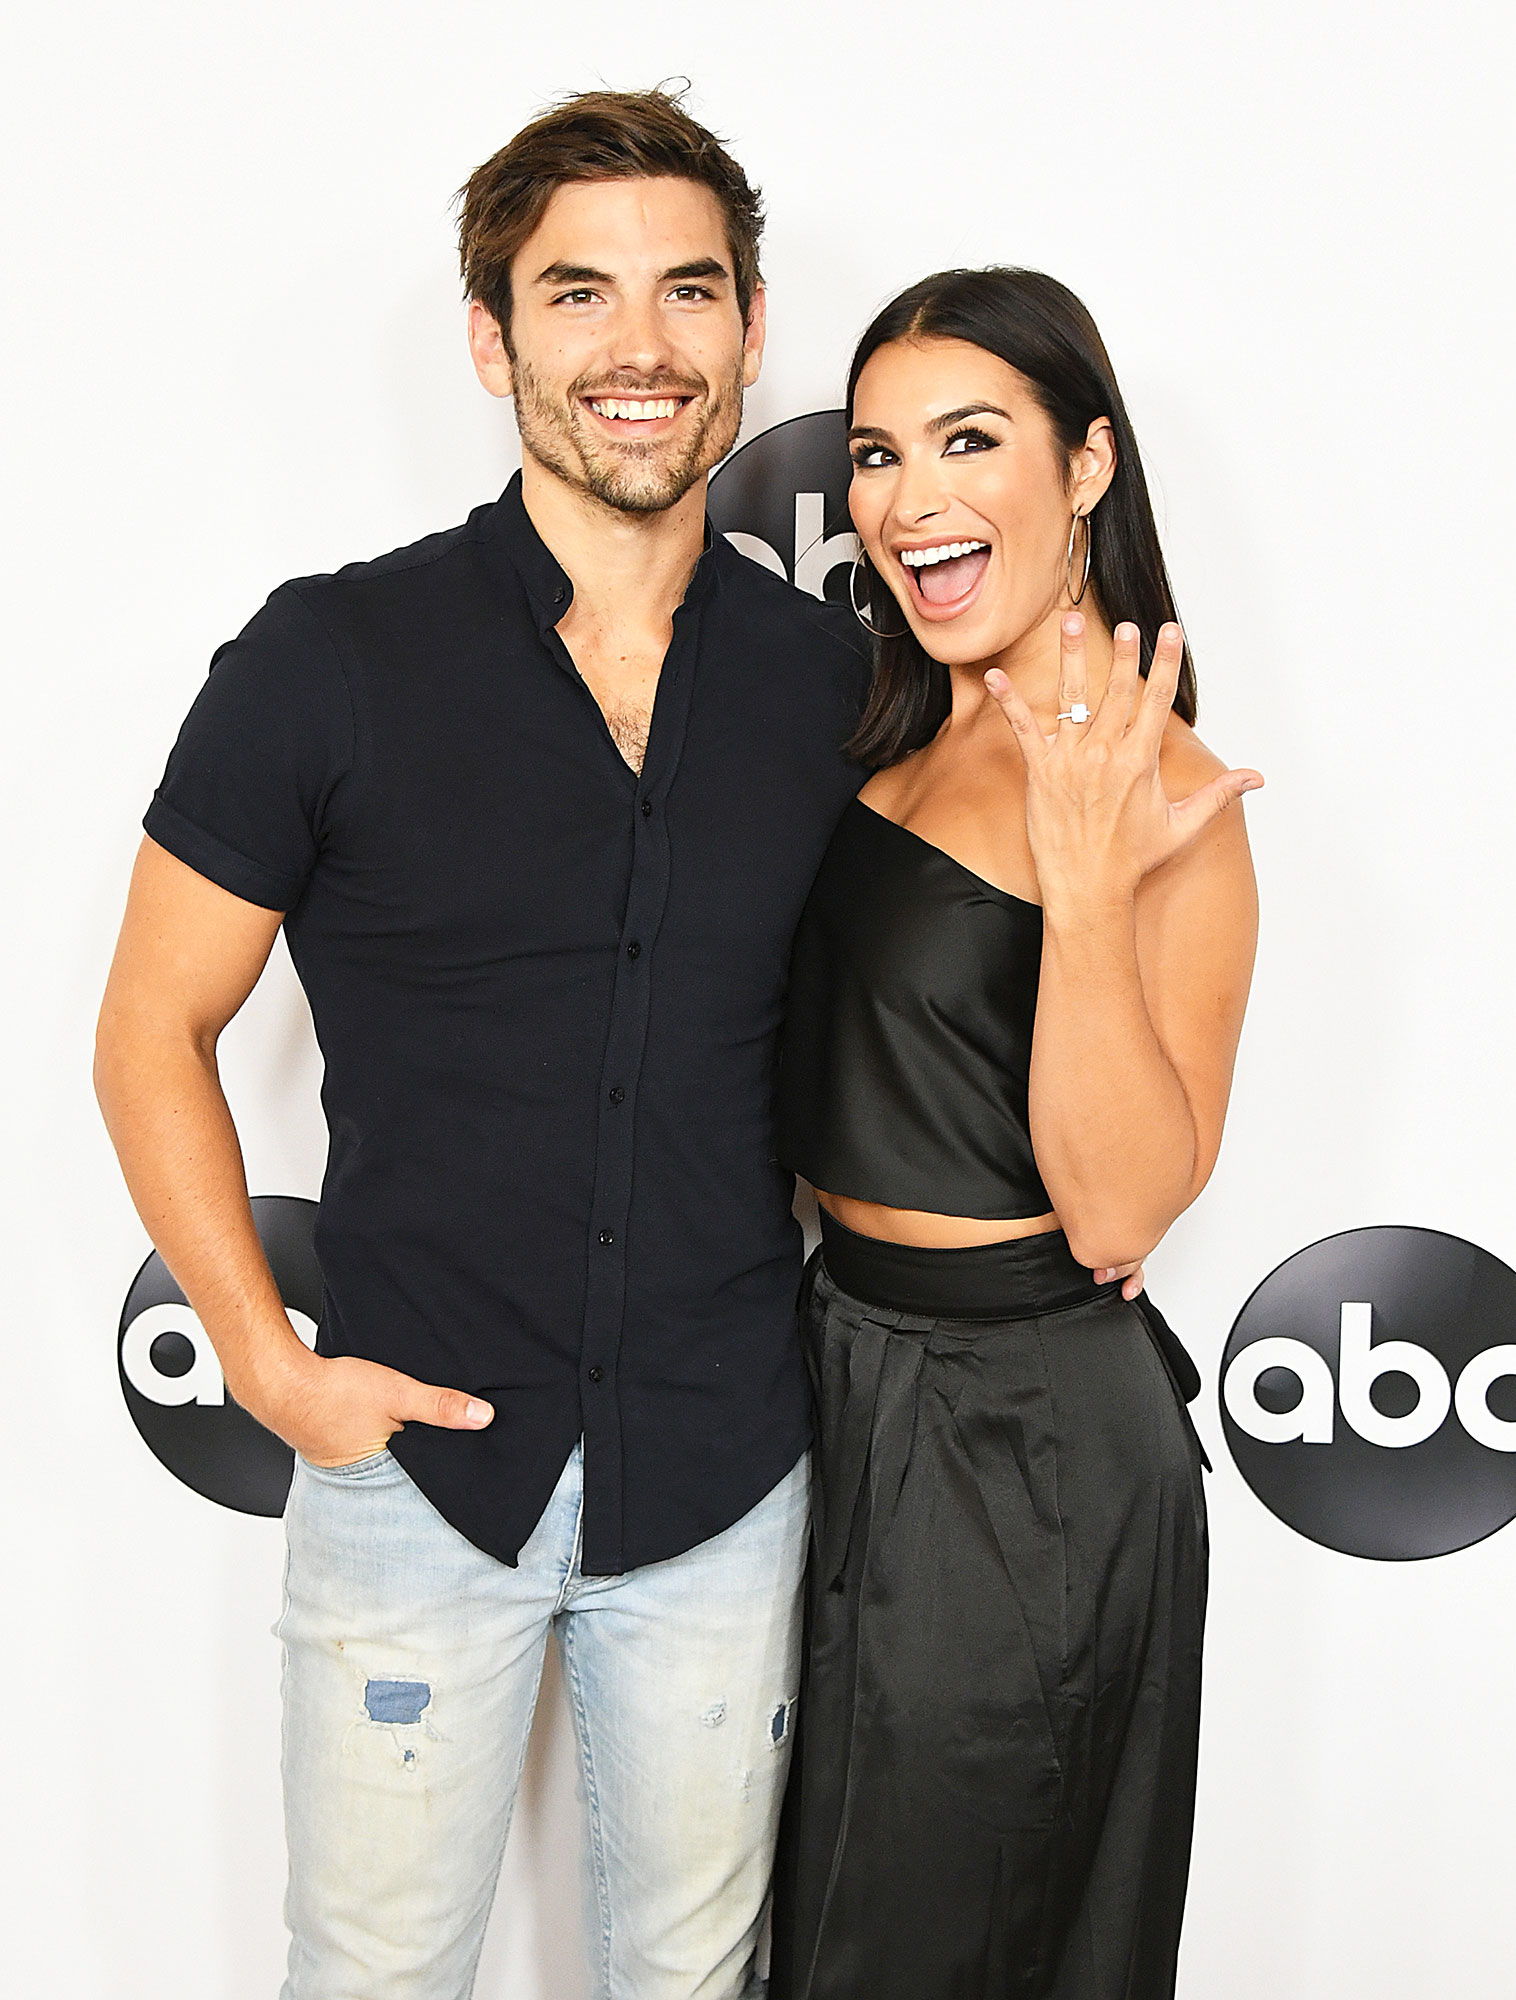 Celebrity Couples of 2018 Jared Haibon and Ashley Iaconetti - Three years after they met while filming Bachelor in Paradise, Iaconetti and Haibon revealed in May that their longtime friendship had turned romantic. The Bachelor Nation couple returned to Mexico in June and Haibon popped the question.